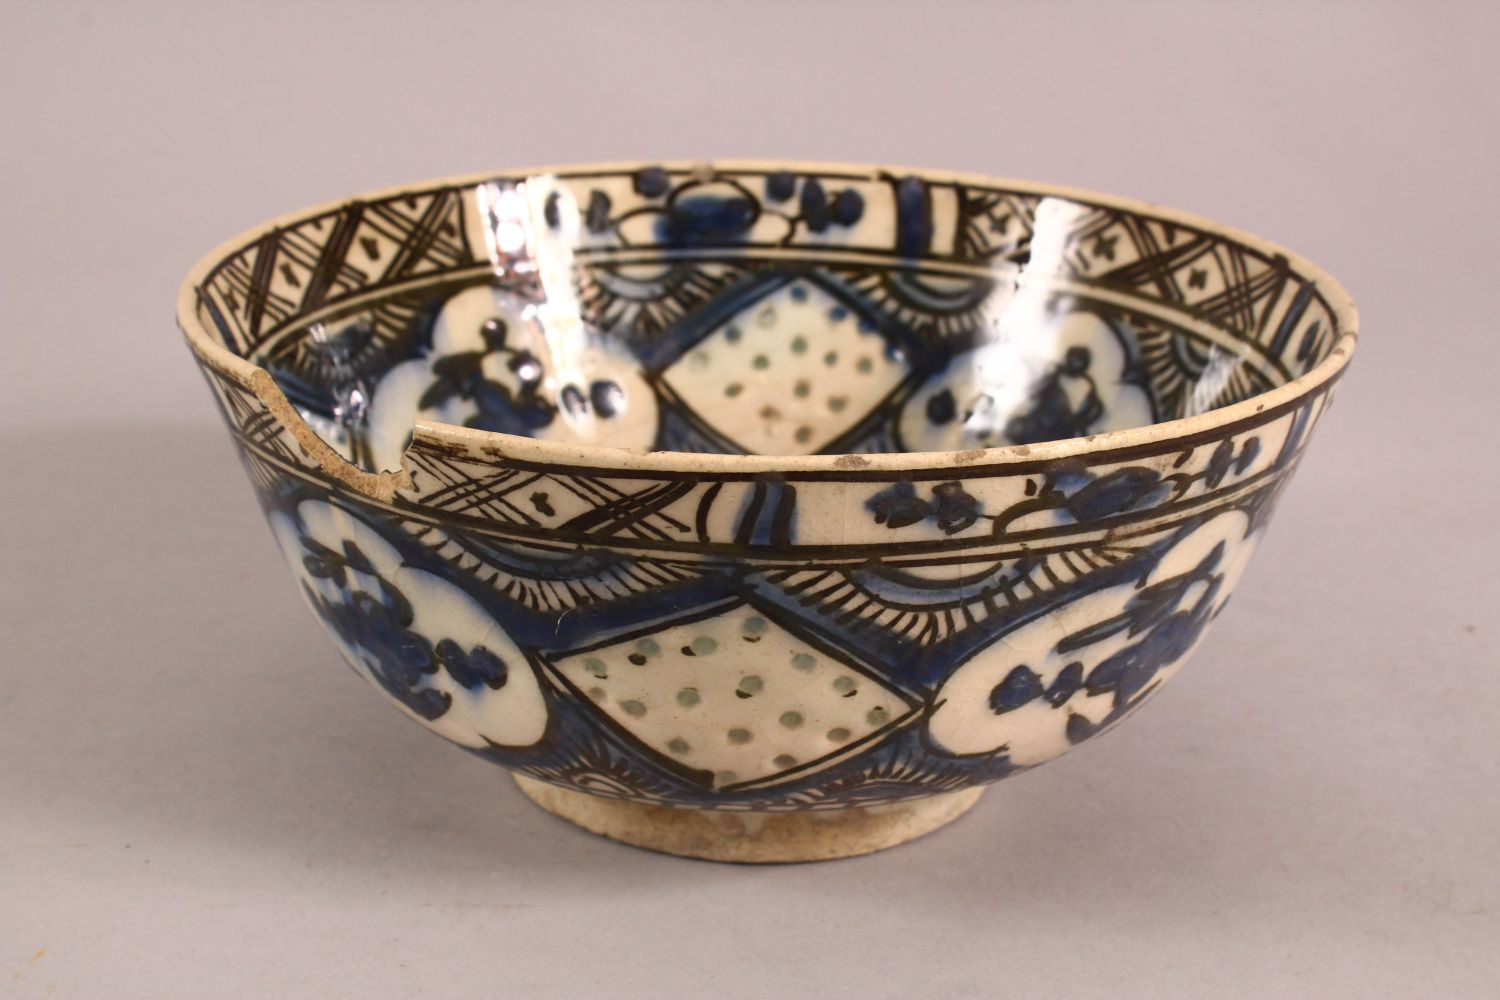 A 19TH CENTURY OR EARLIER TURKISH POTTERY BOWL, with floral motif decorations, (af) 18.5cm - Image 4 of 6